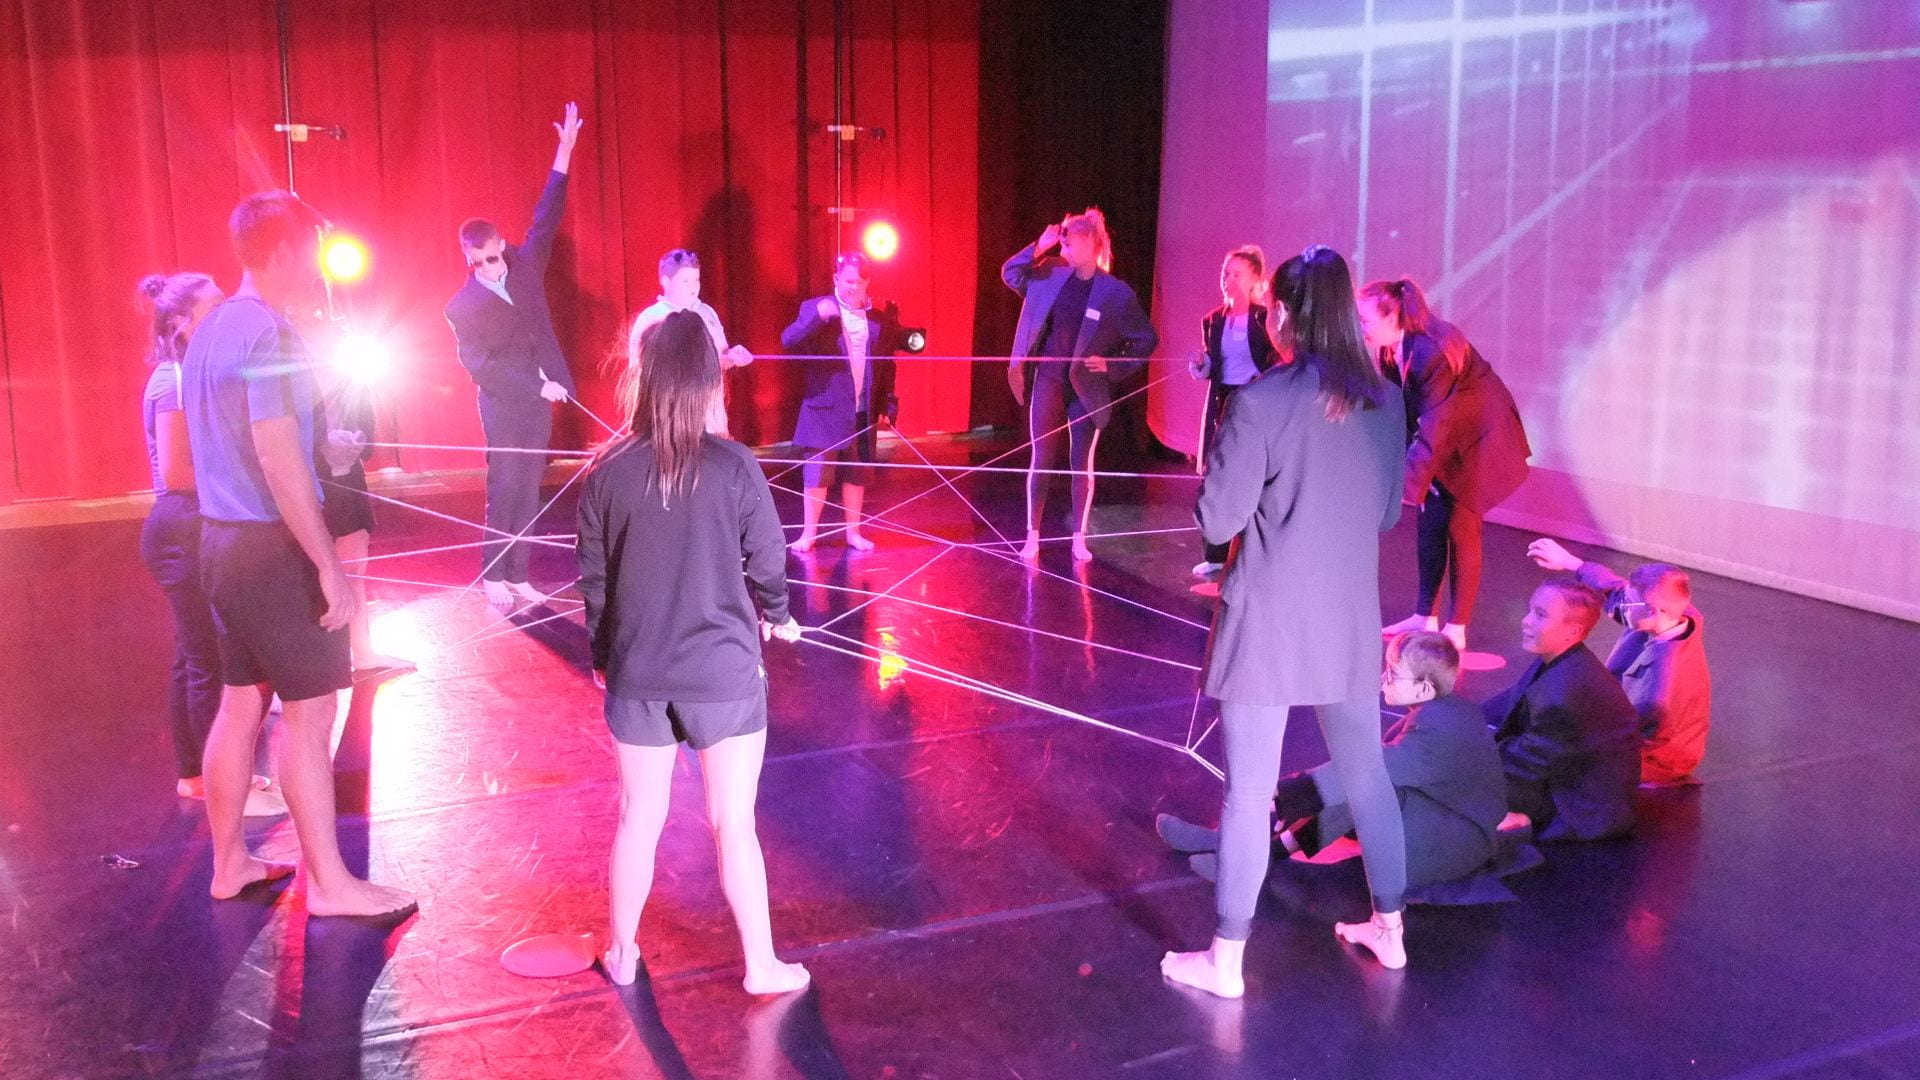 students and school pupils taking part in a dance activity